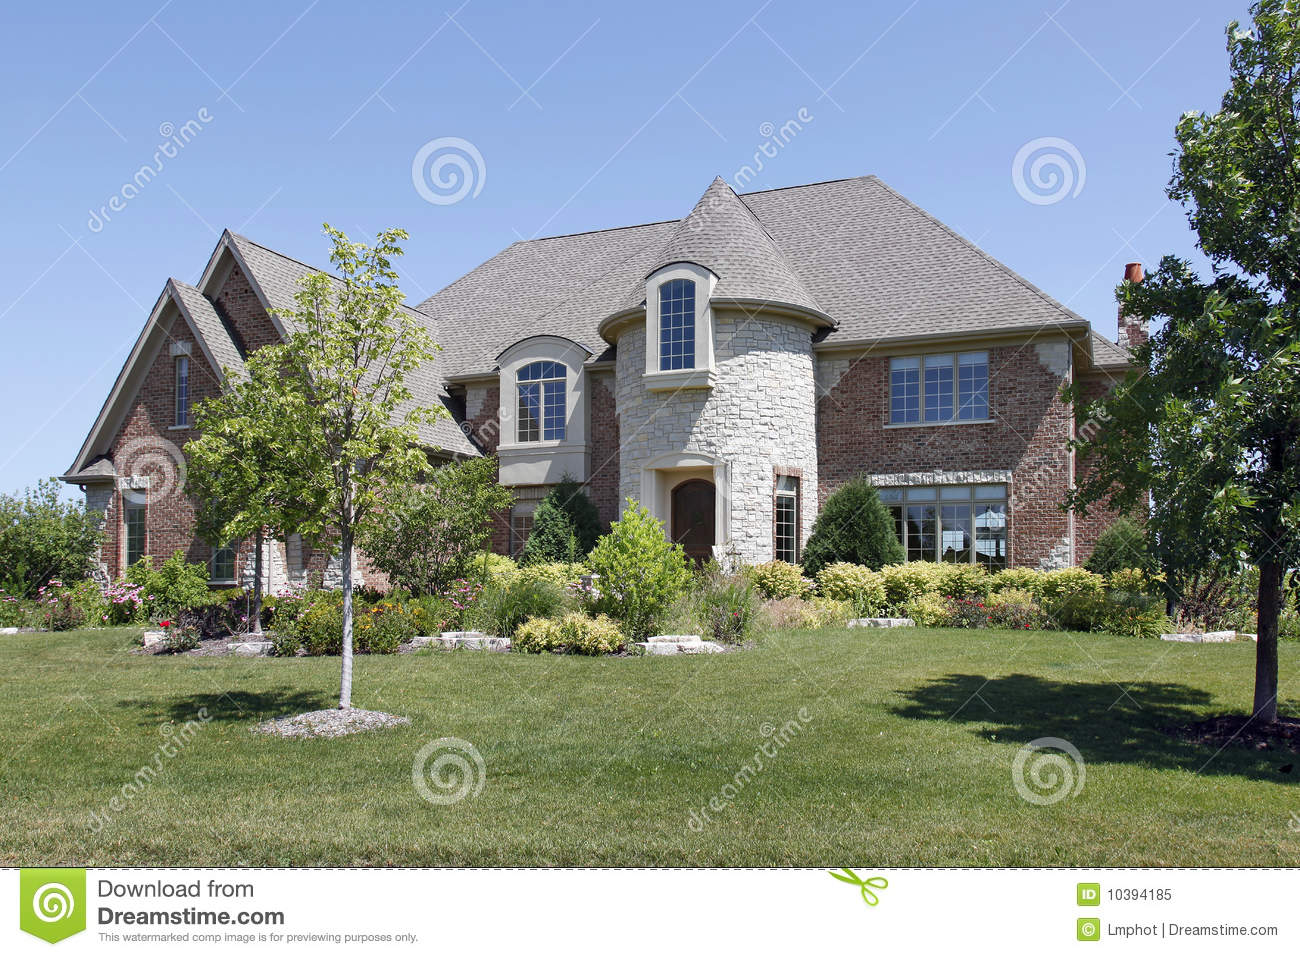 Luxury Home With Stone Turret Royalty Free Stock Photo